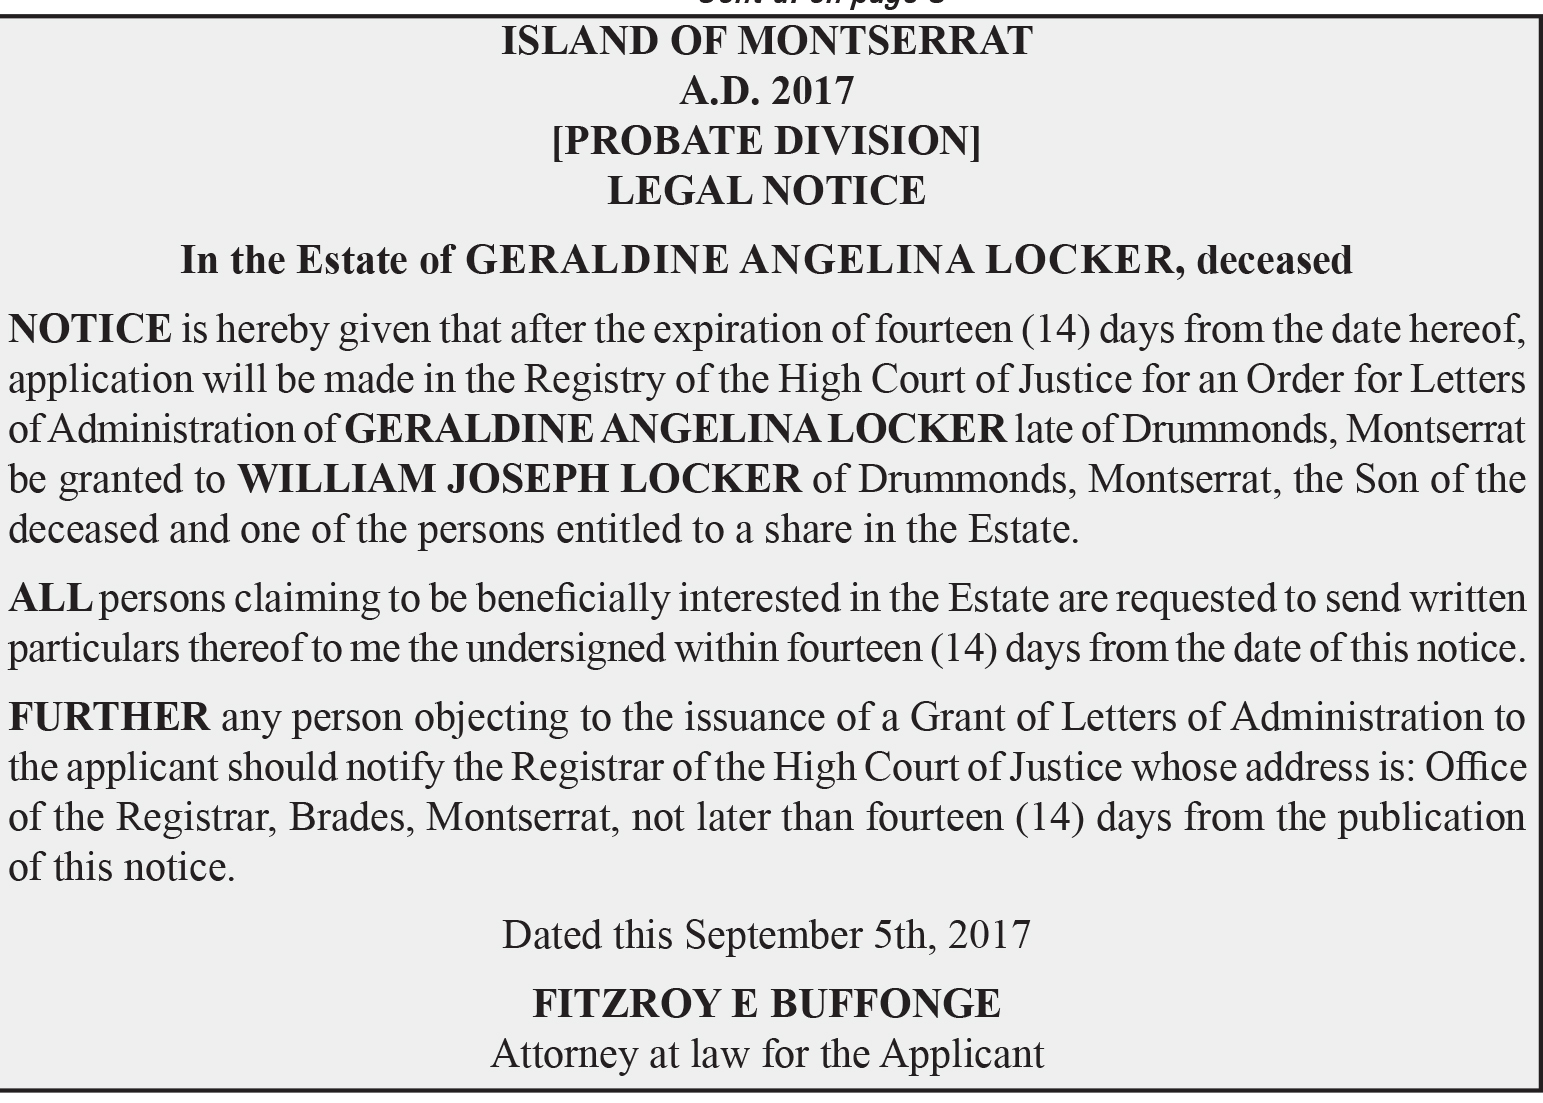 Legal Notice - In the Estate of Geraldine Angelina Locker, deceased